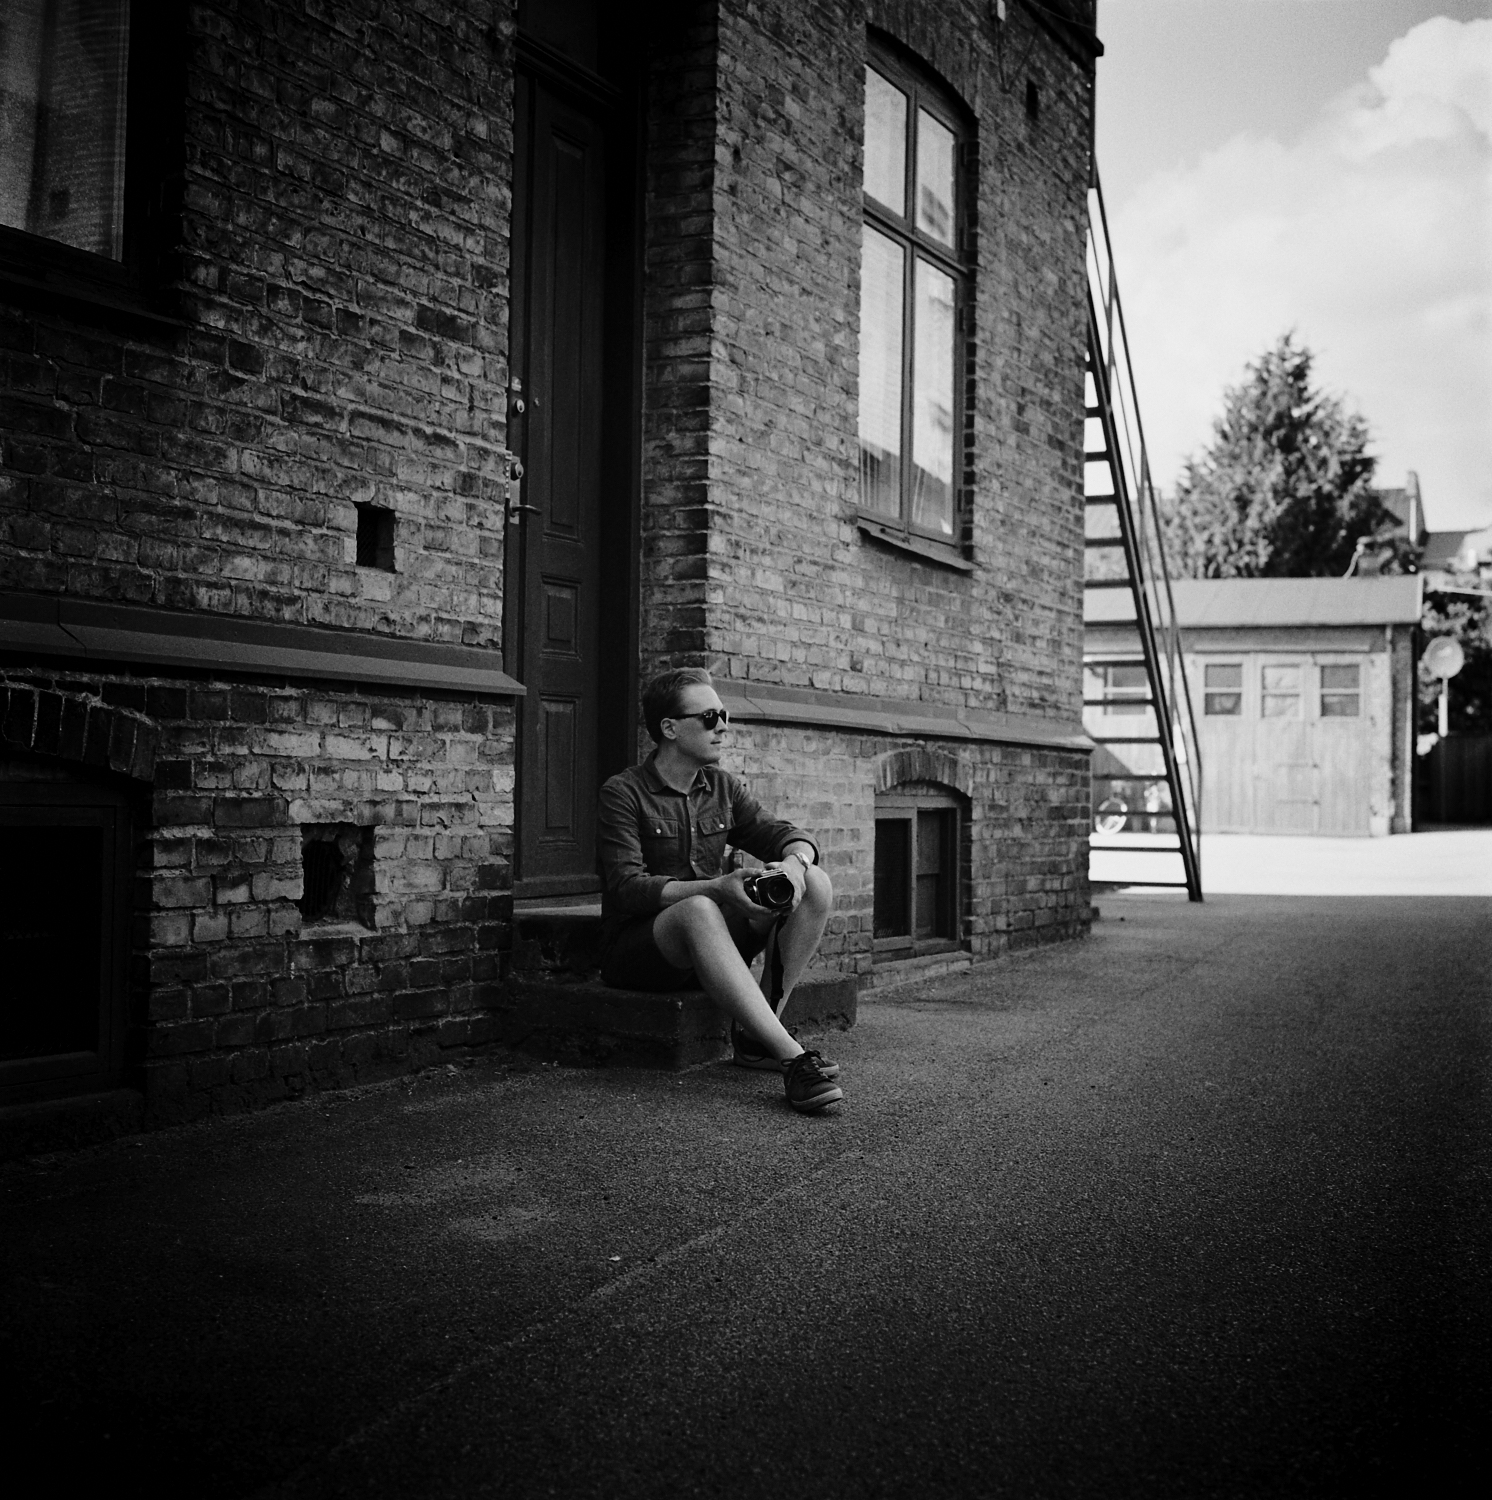 Man sitting on stairs in front of building. Photographer: Helena Bergqvist.